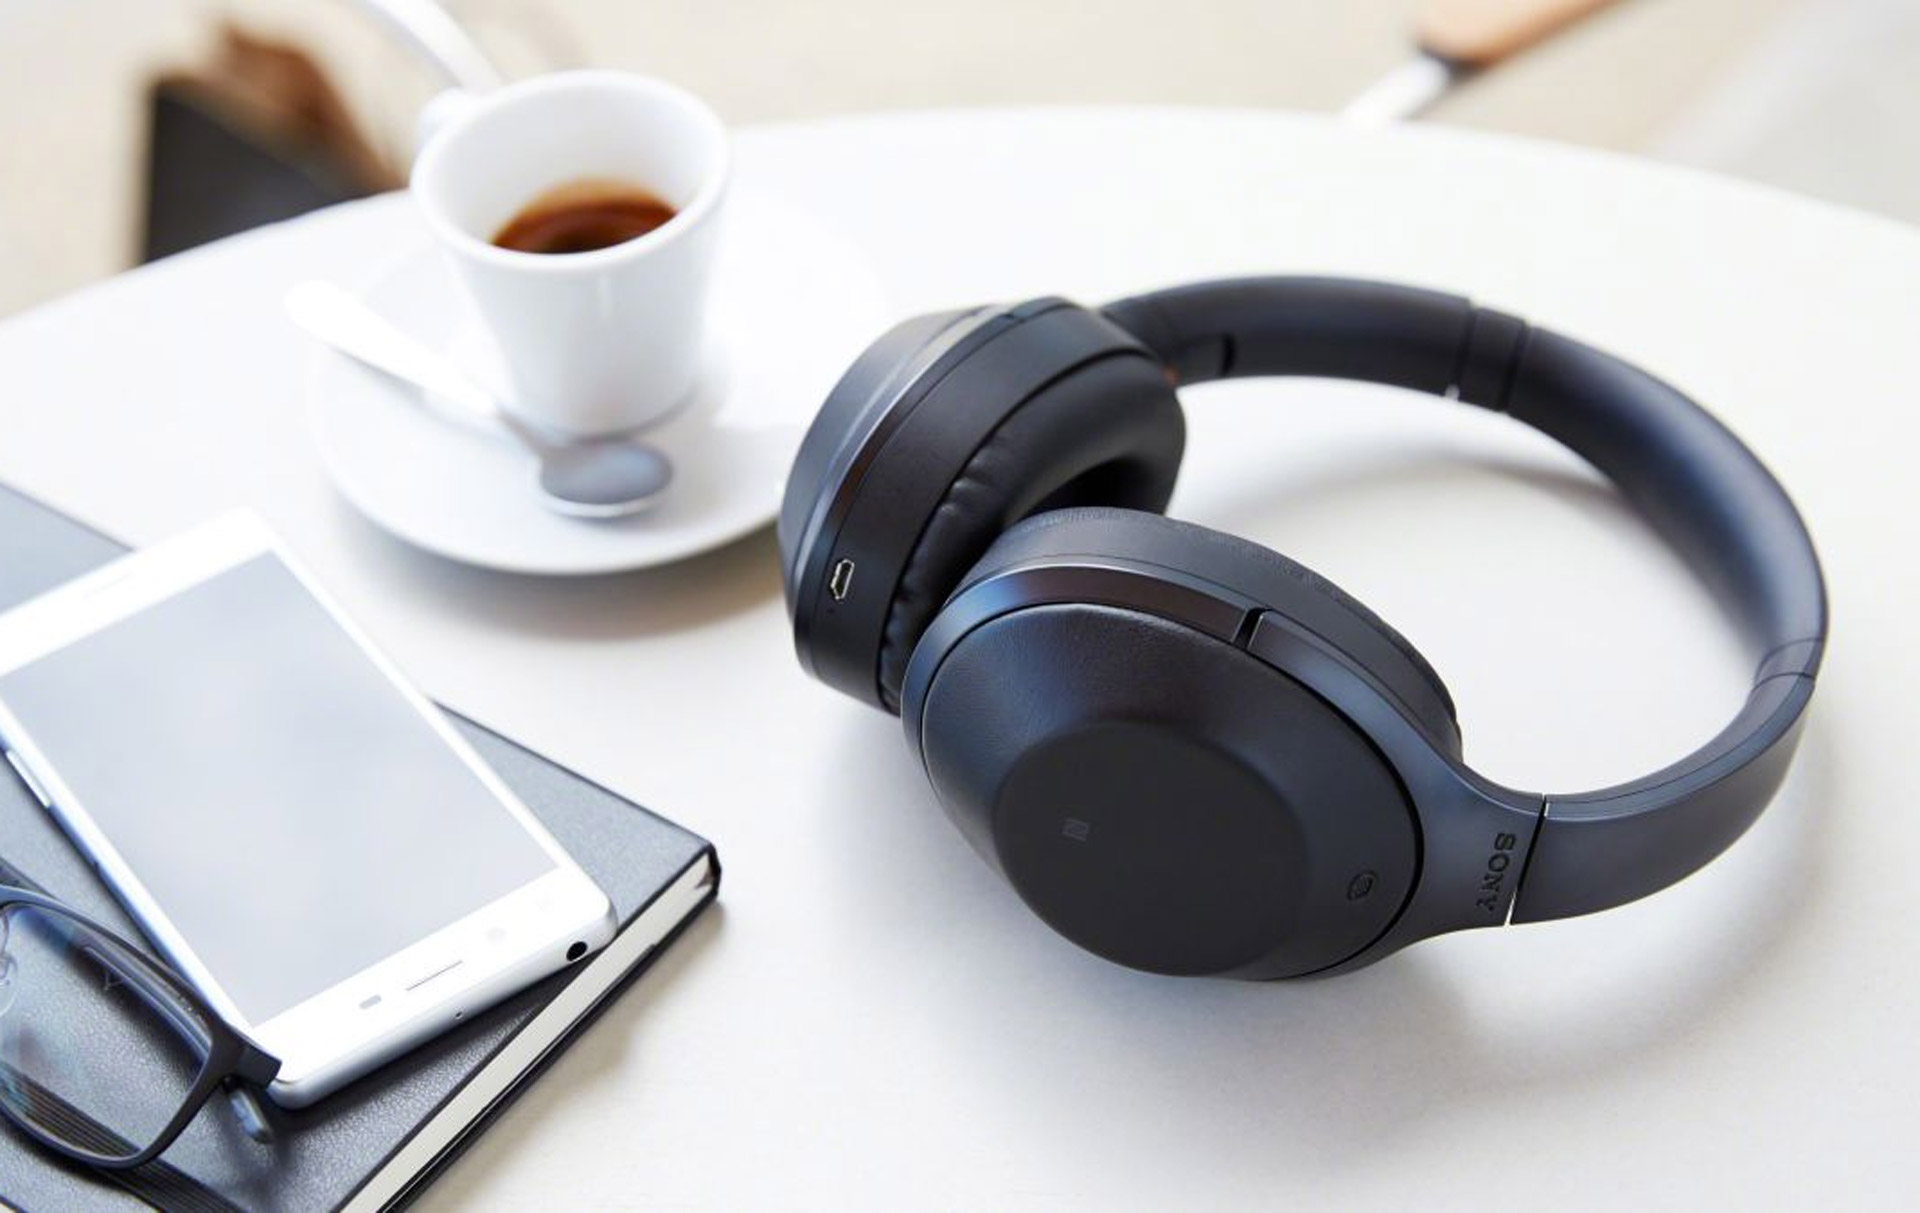 The 15 Best Budget Headphones Under $50 Buyers Guide & Reviews